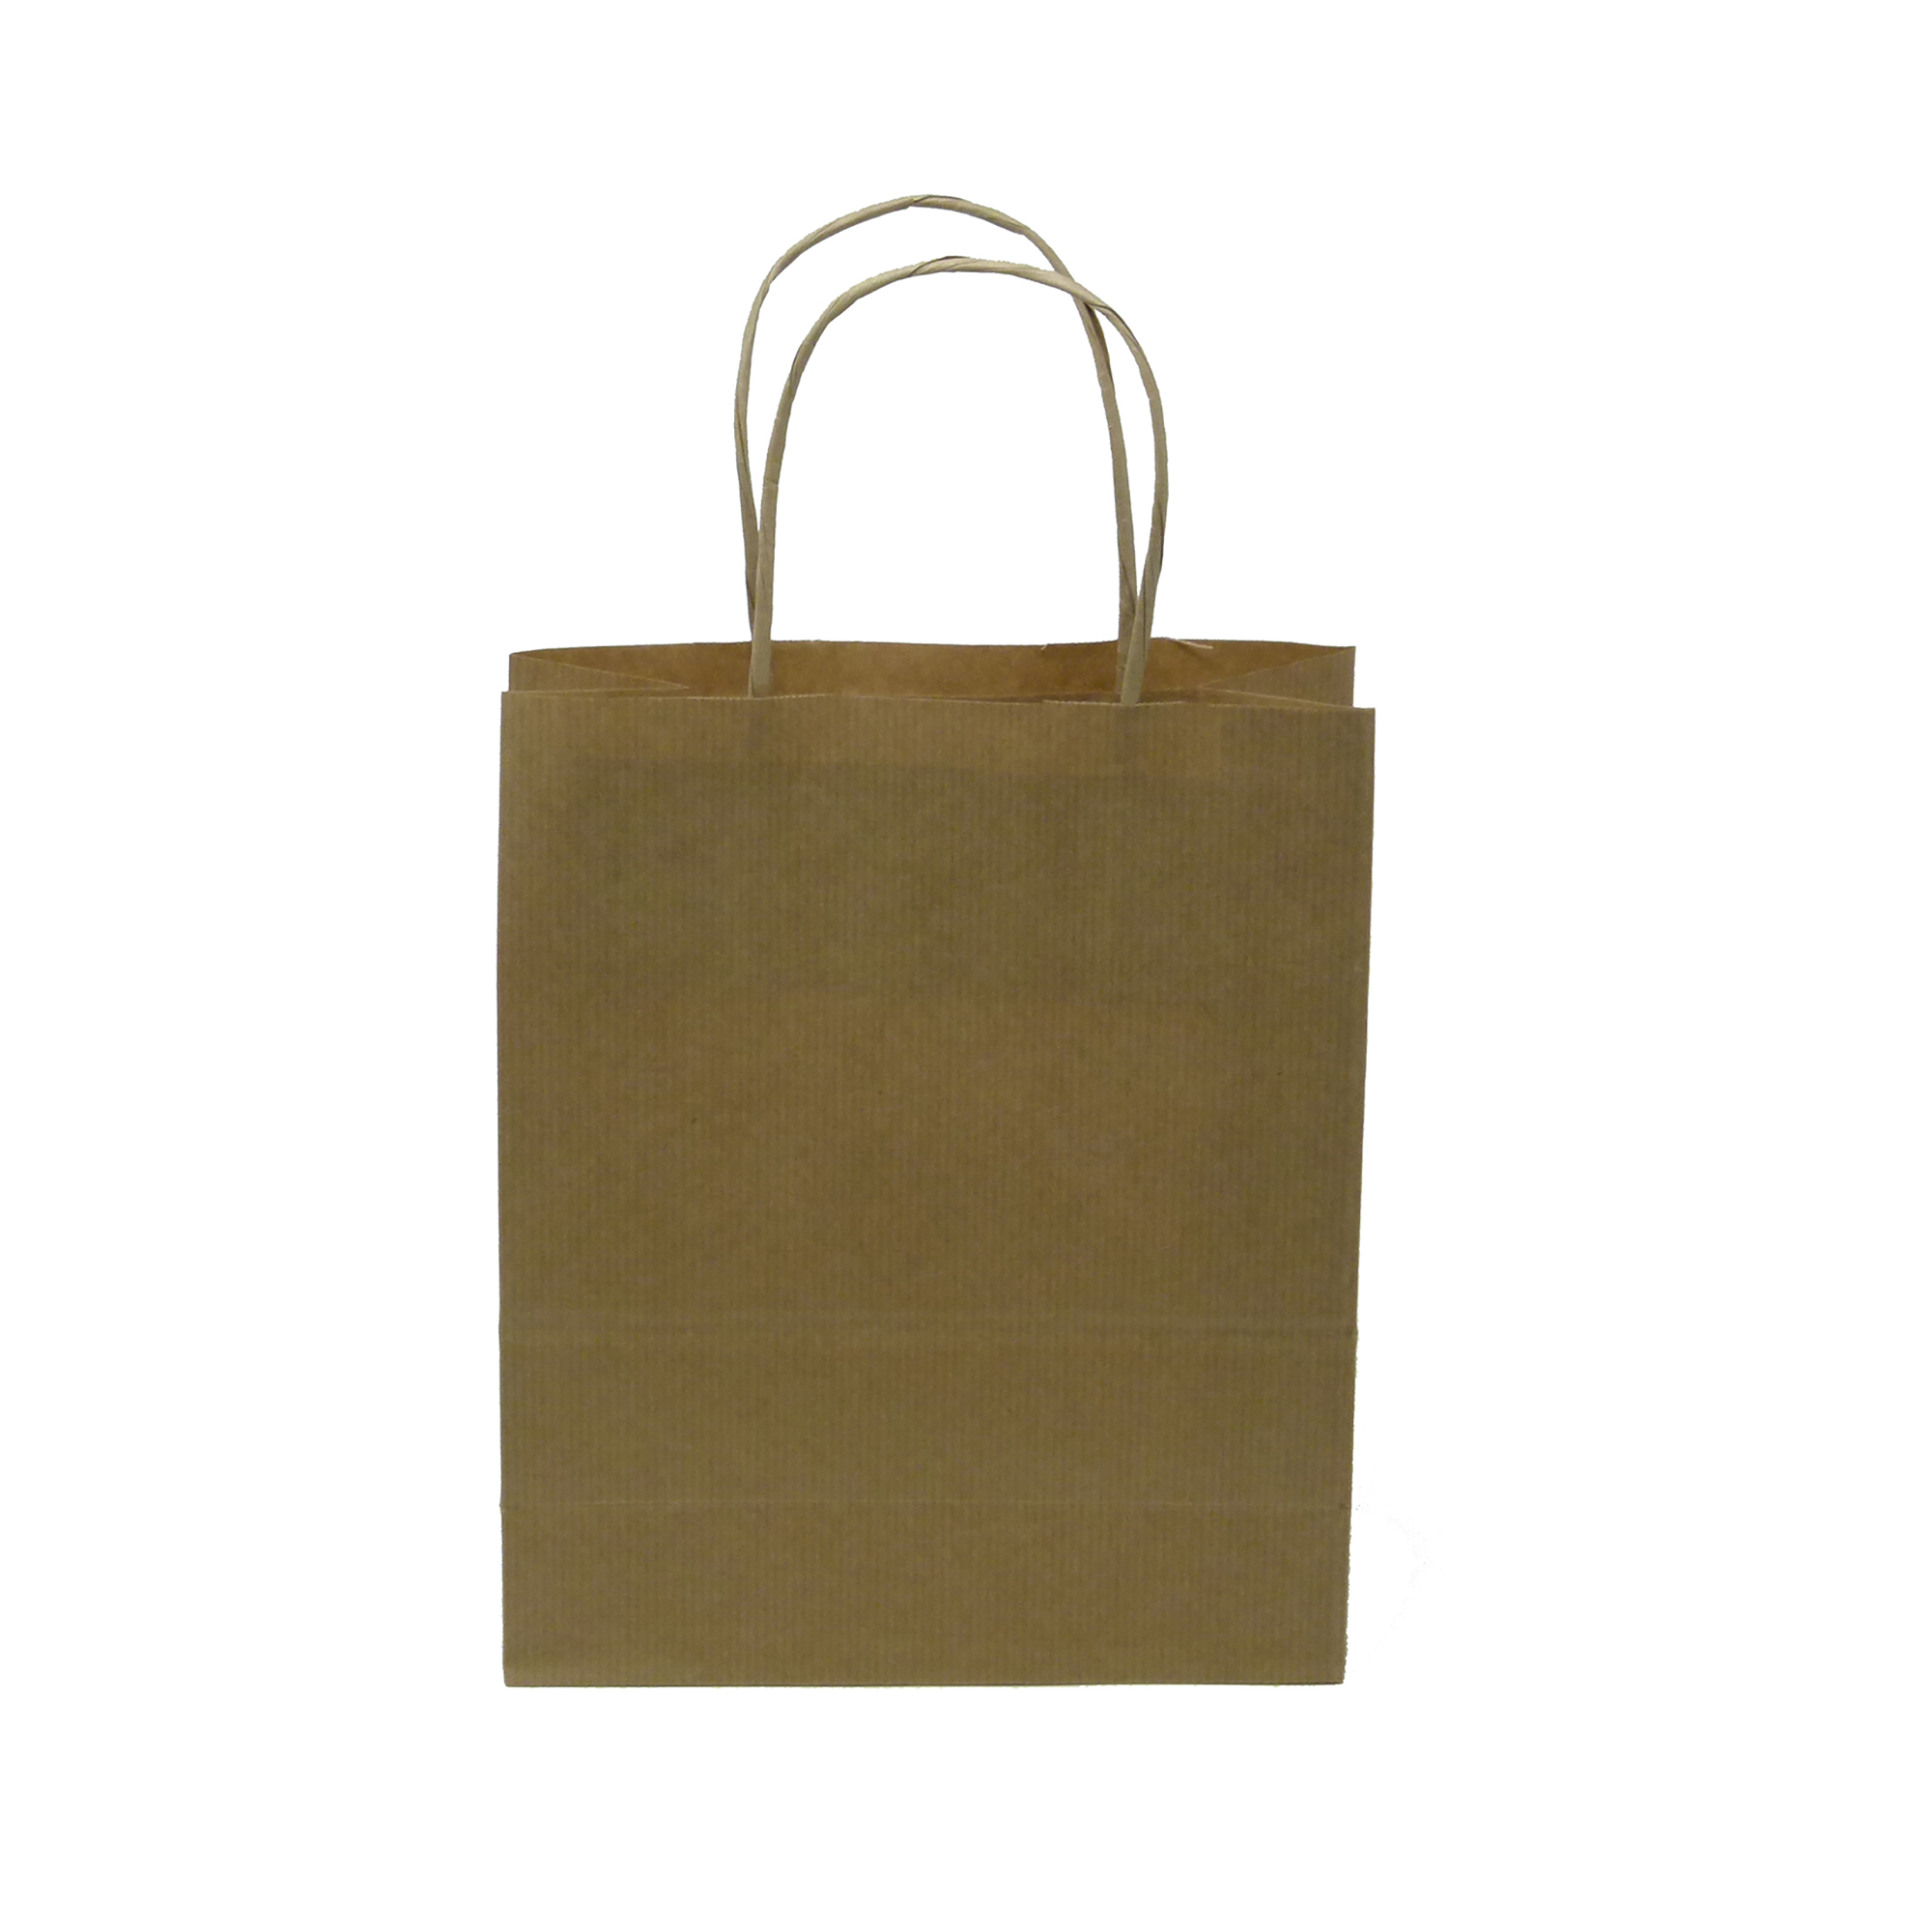 Plastic bags Kraft Paper Carrier Bag Twisted Handles Small 180x215x80mm 90g Natural Brown Ref 12925 [Pack 100]